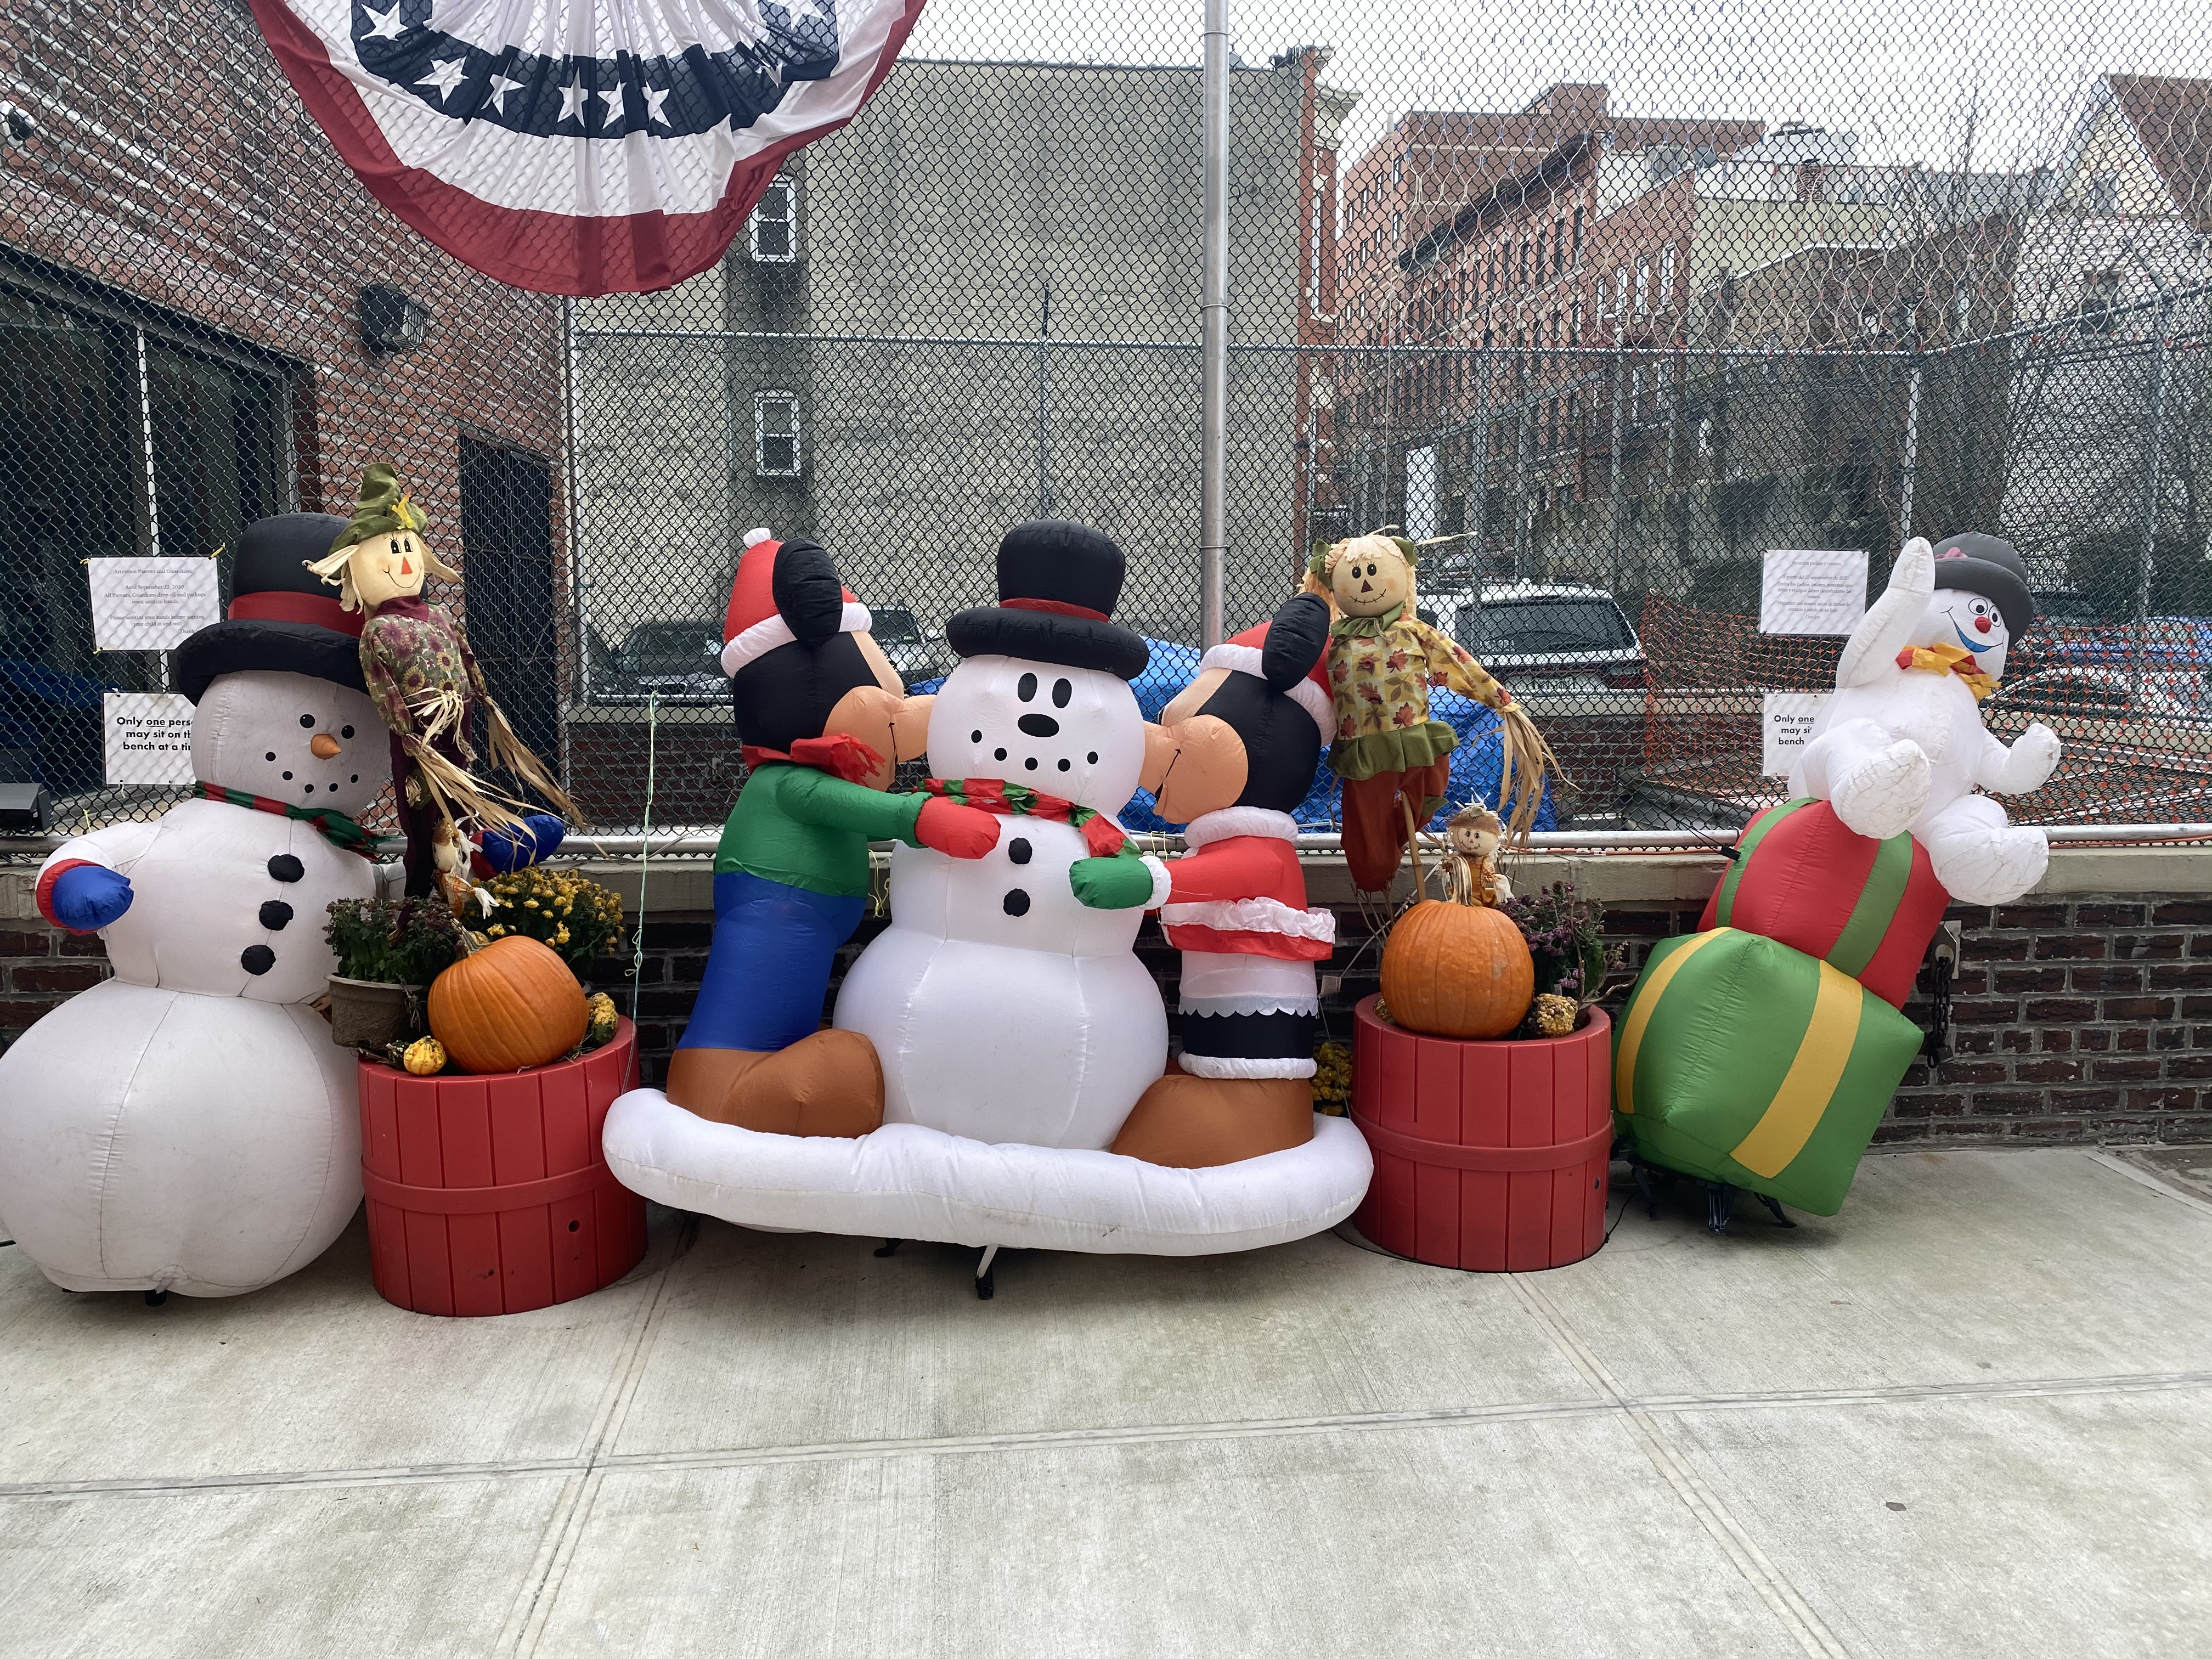 The Holiday Season at Belmont